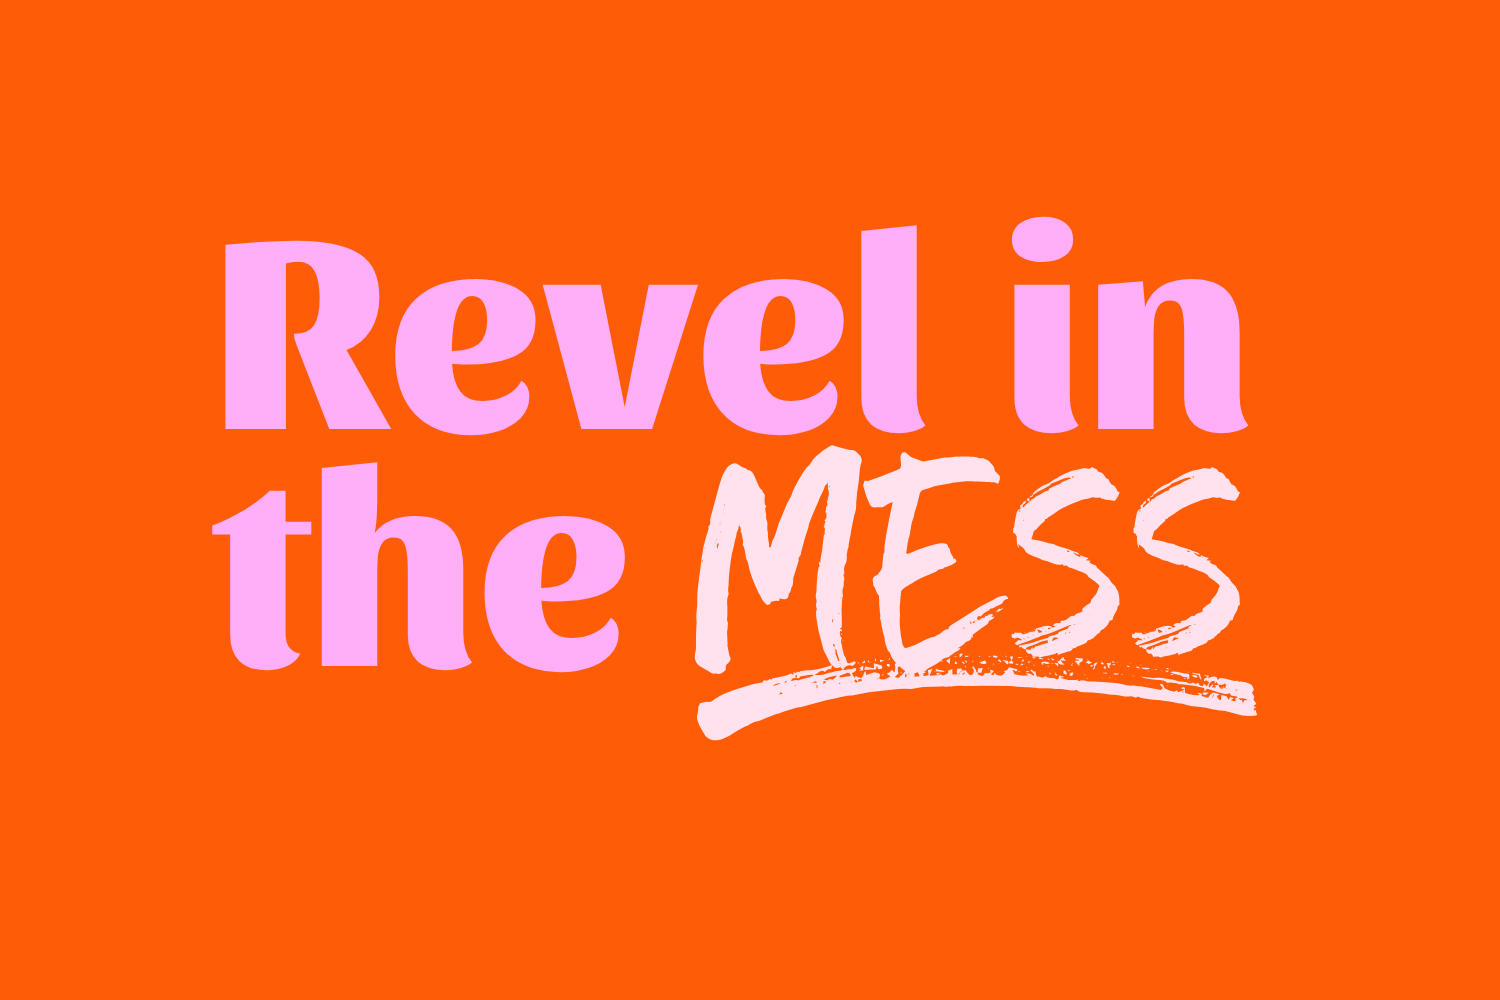 Revel in the Mess